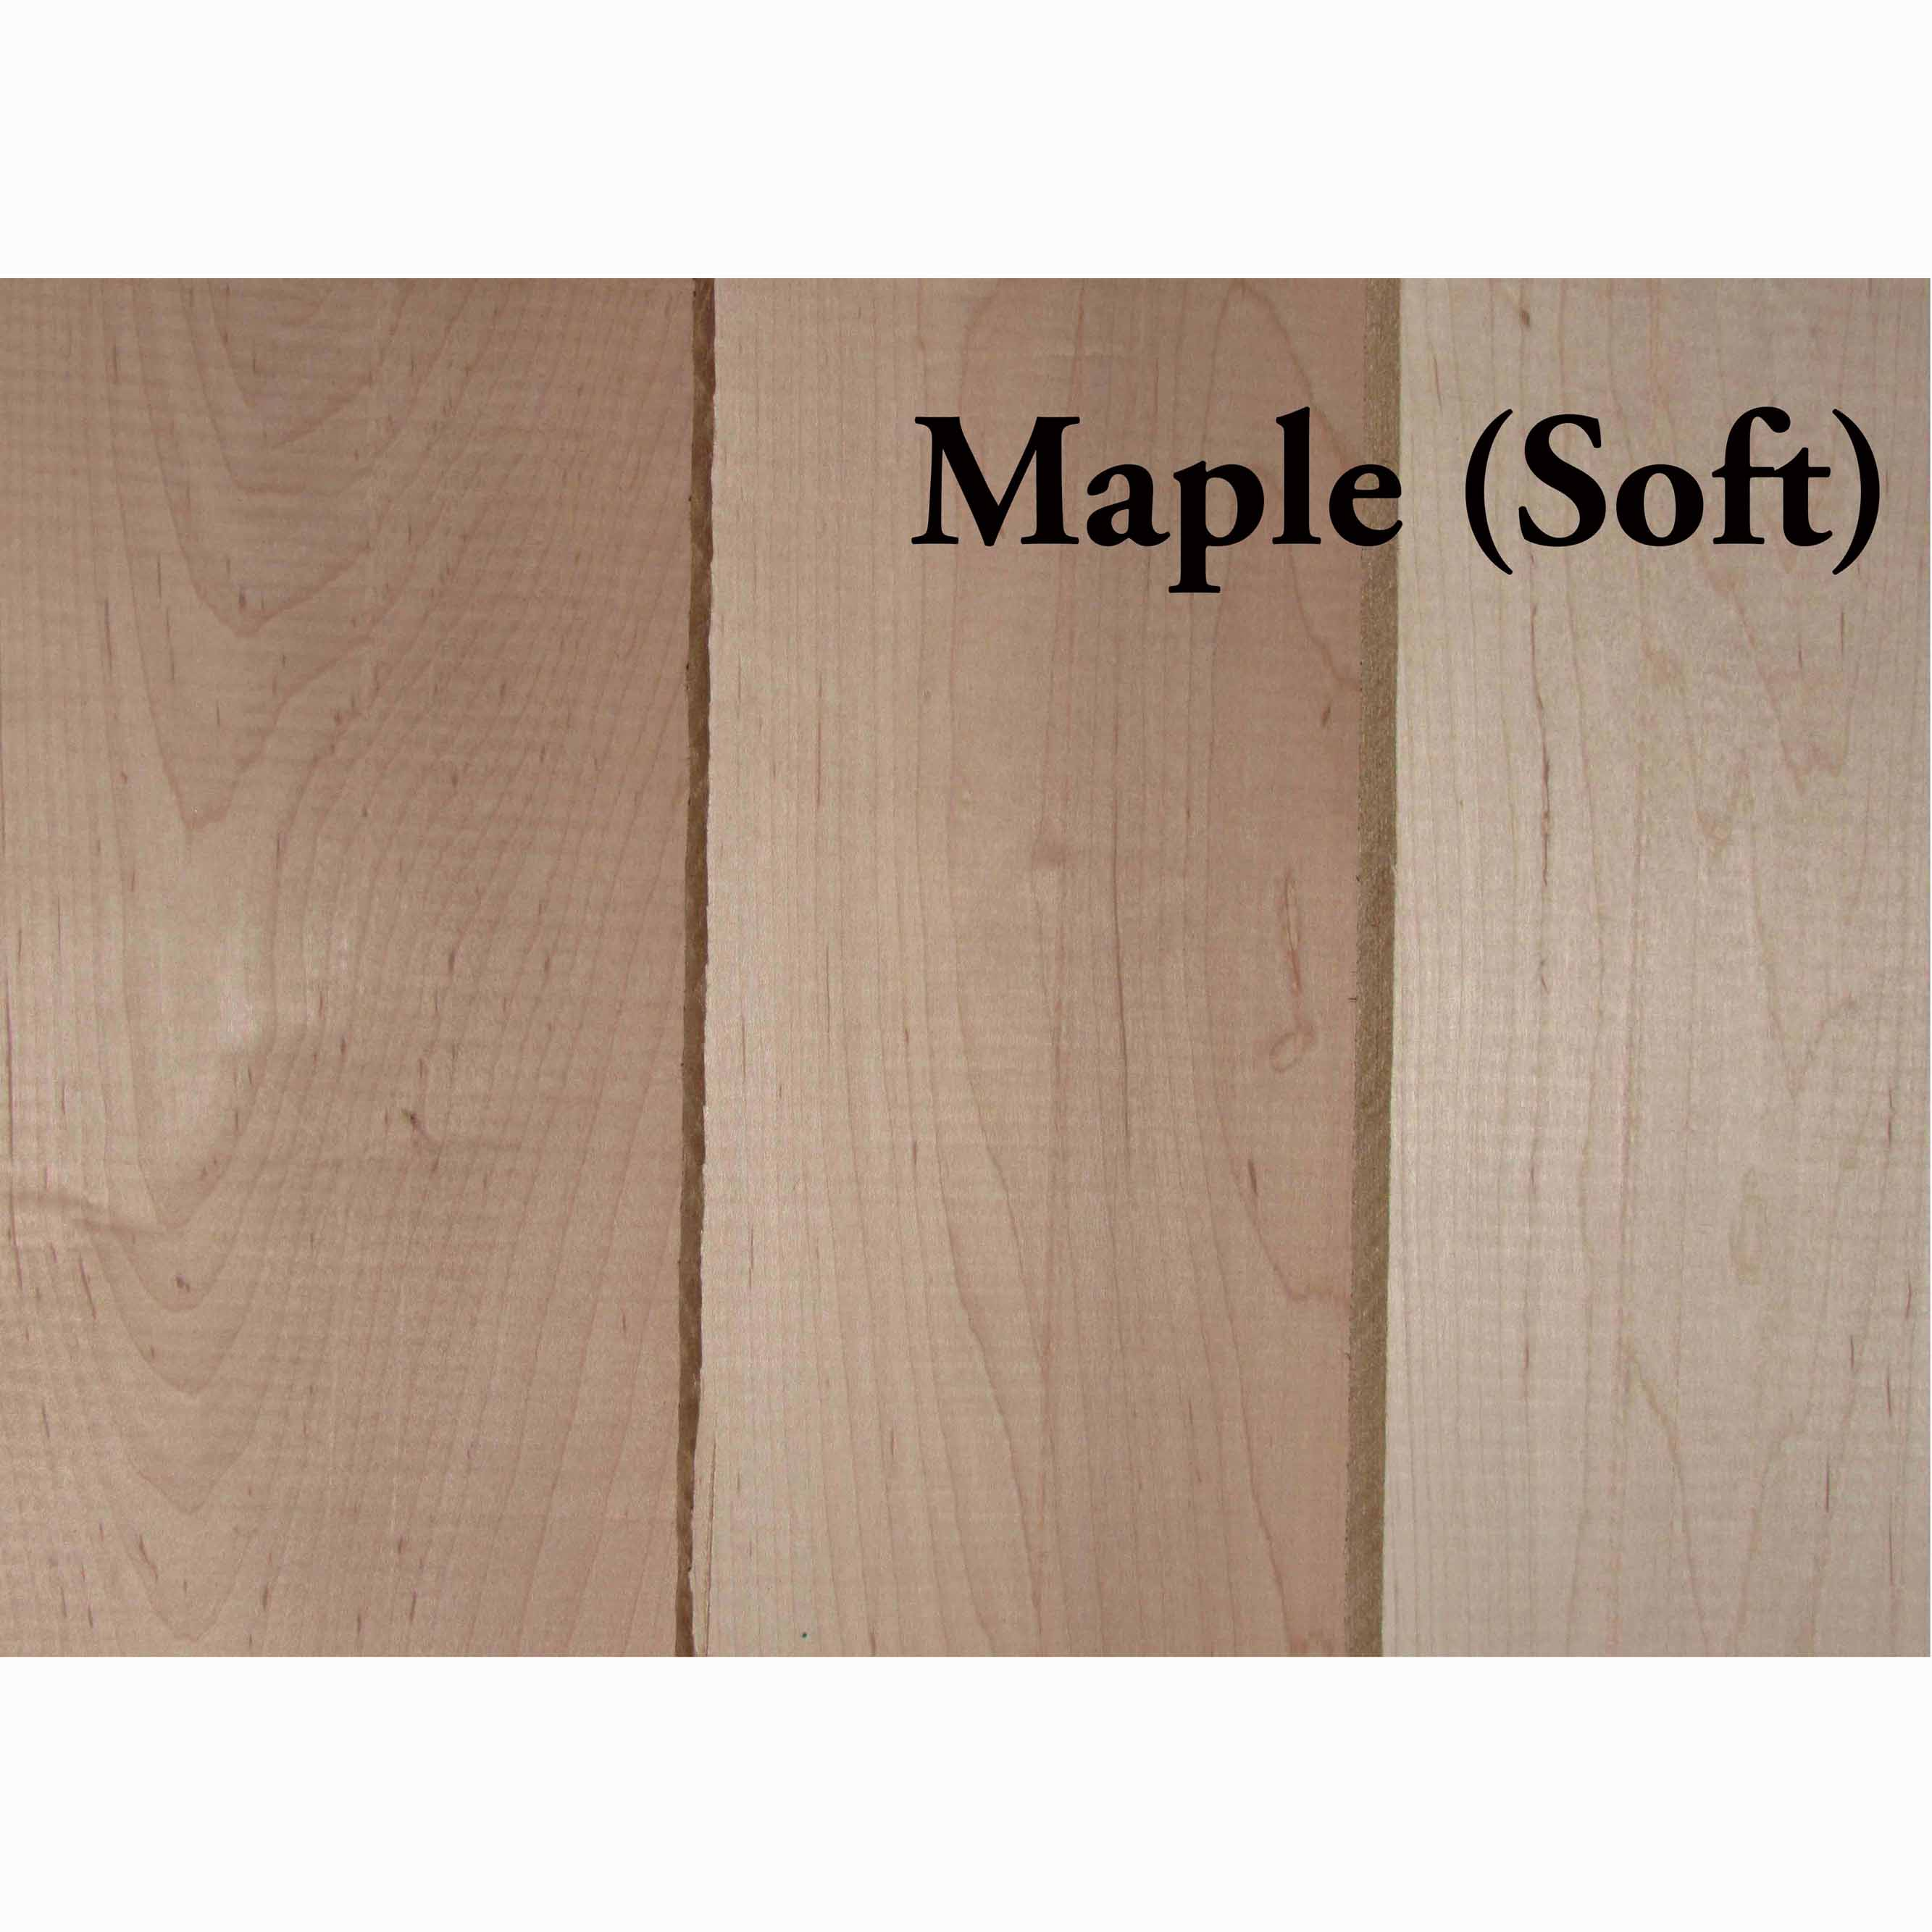 Maple, Soft